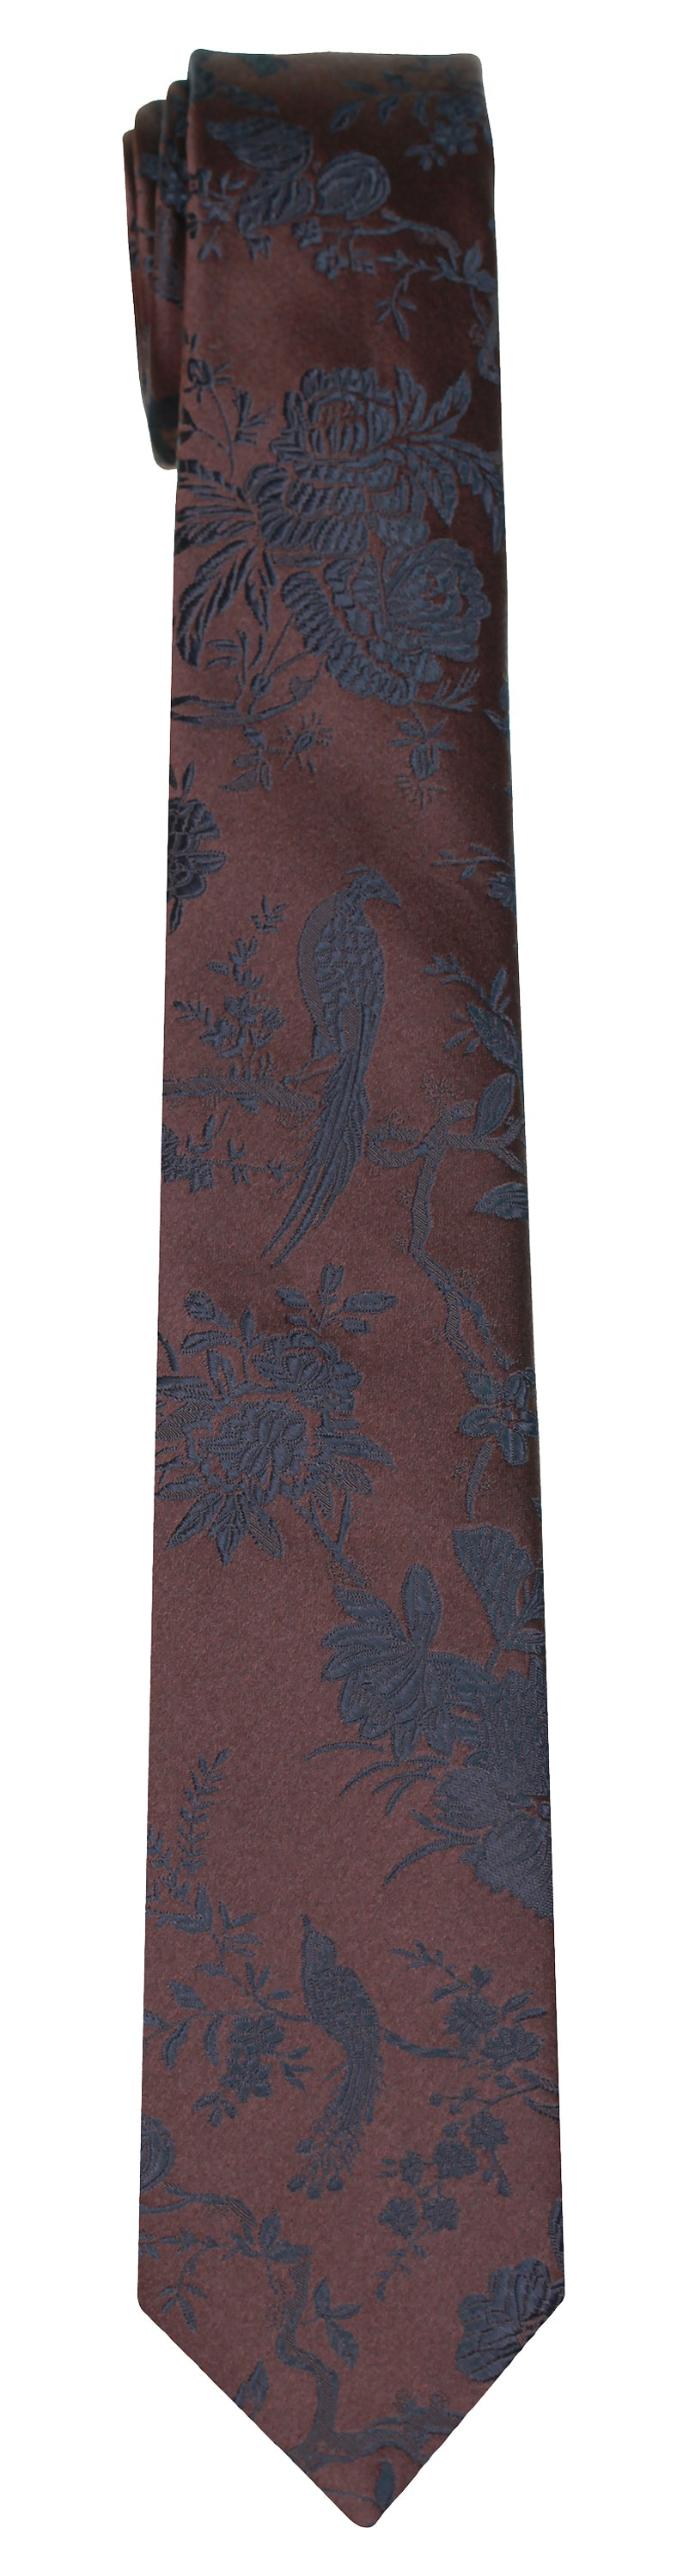 Mimi Fong Quail Tie in Chocolate